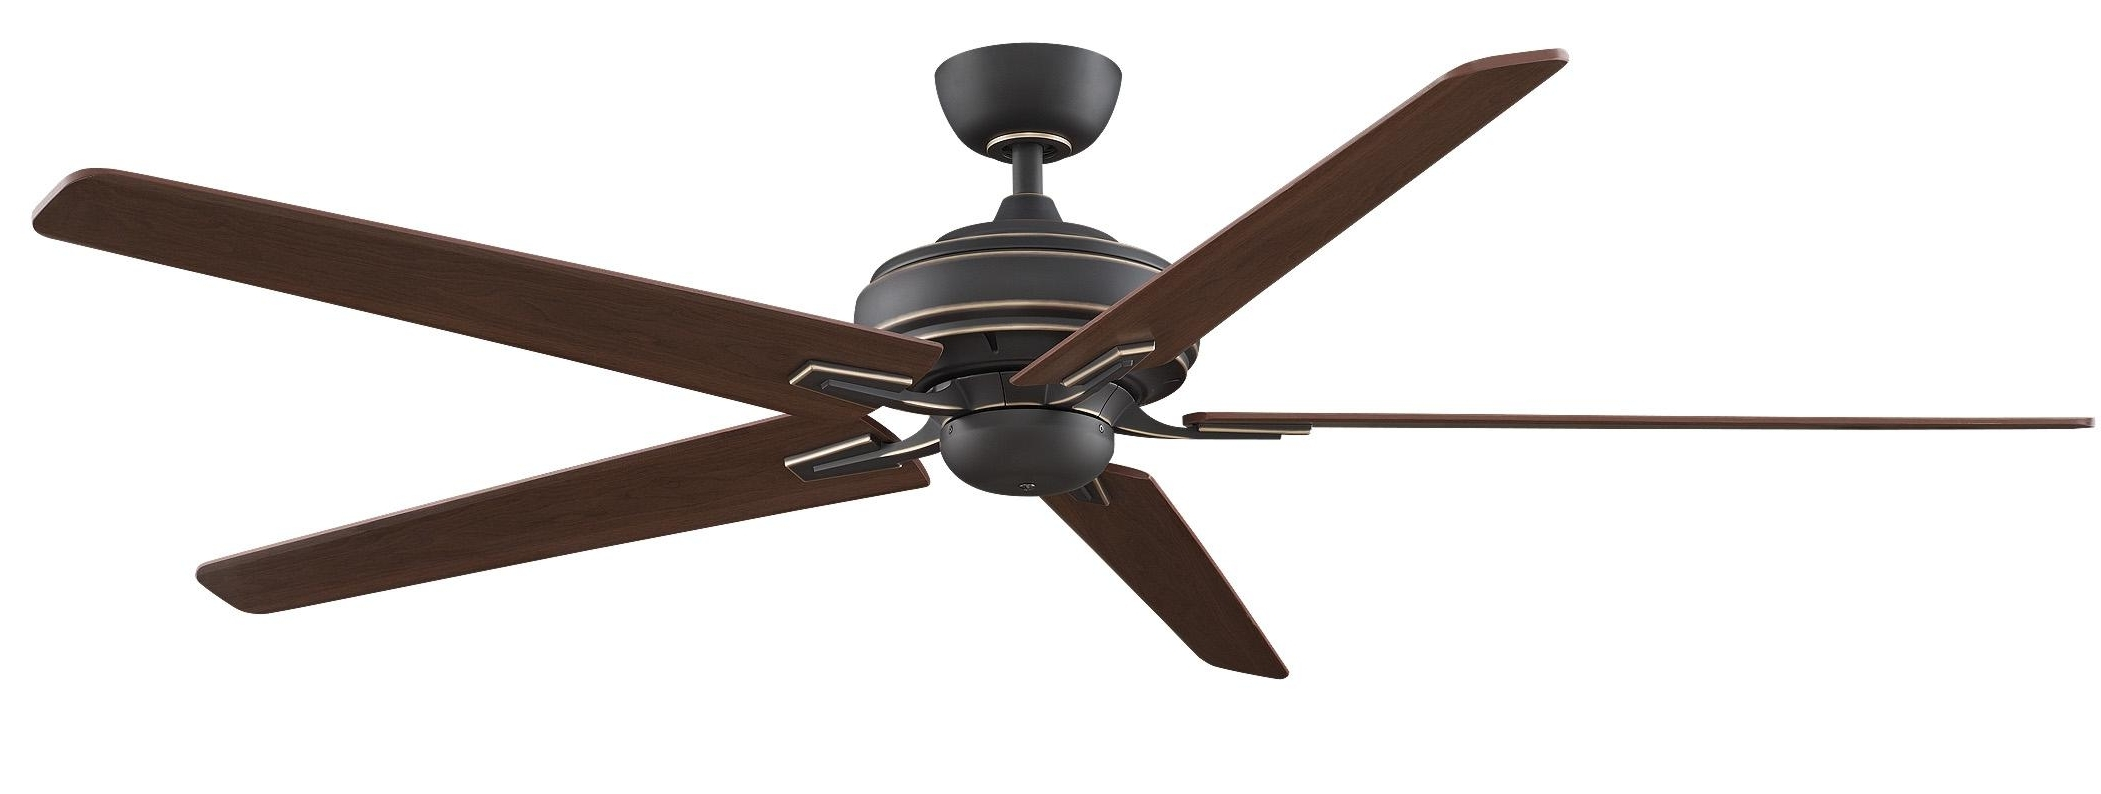 Craftsman Outdoor Ceiling Fans Within Most Up To Date Inch Outdoor Ceiling Fan With 60 Ceiling Fan With Light (View 7 of 20)